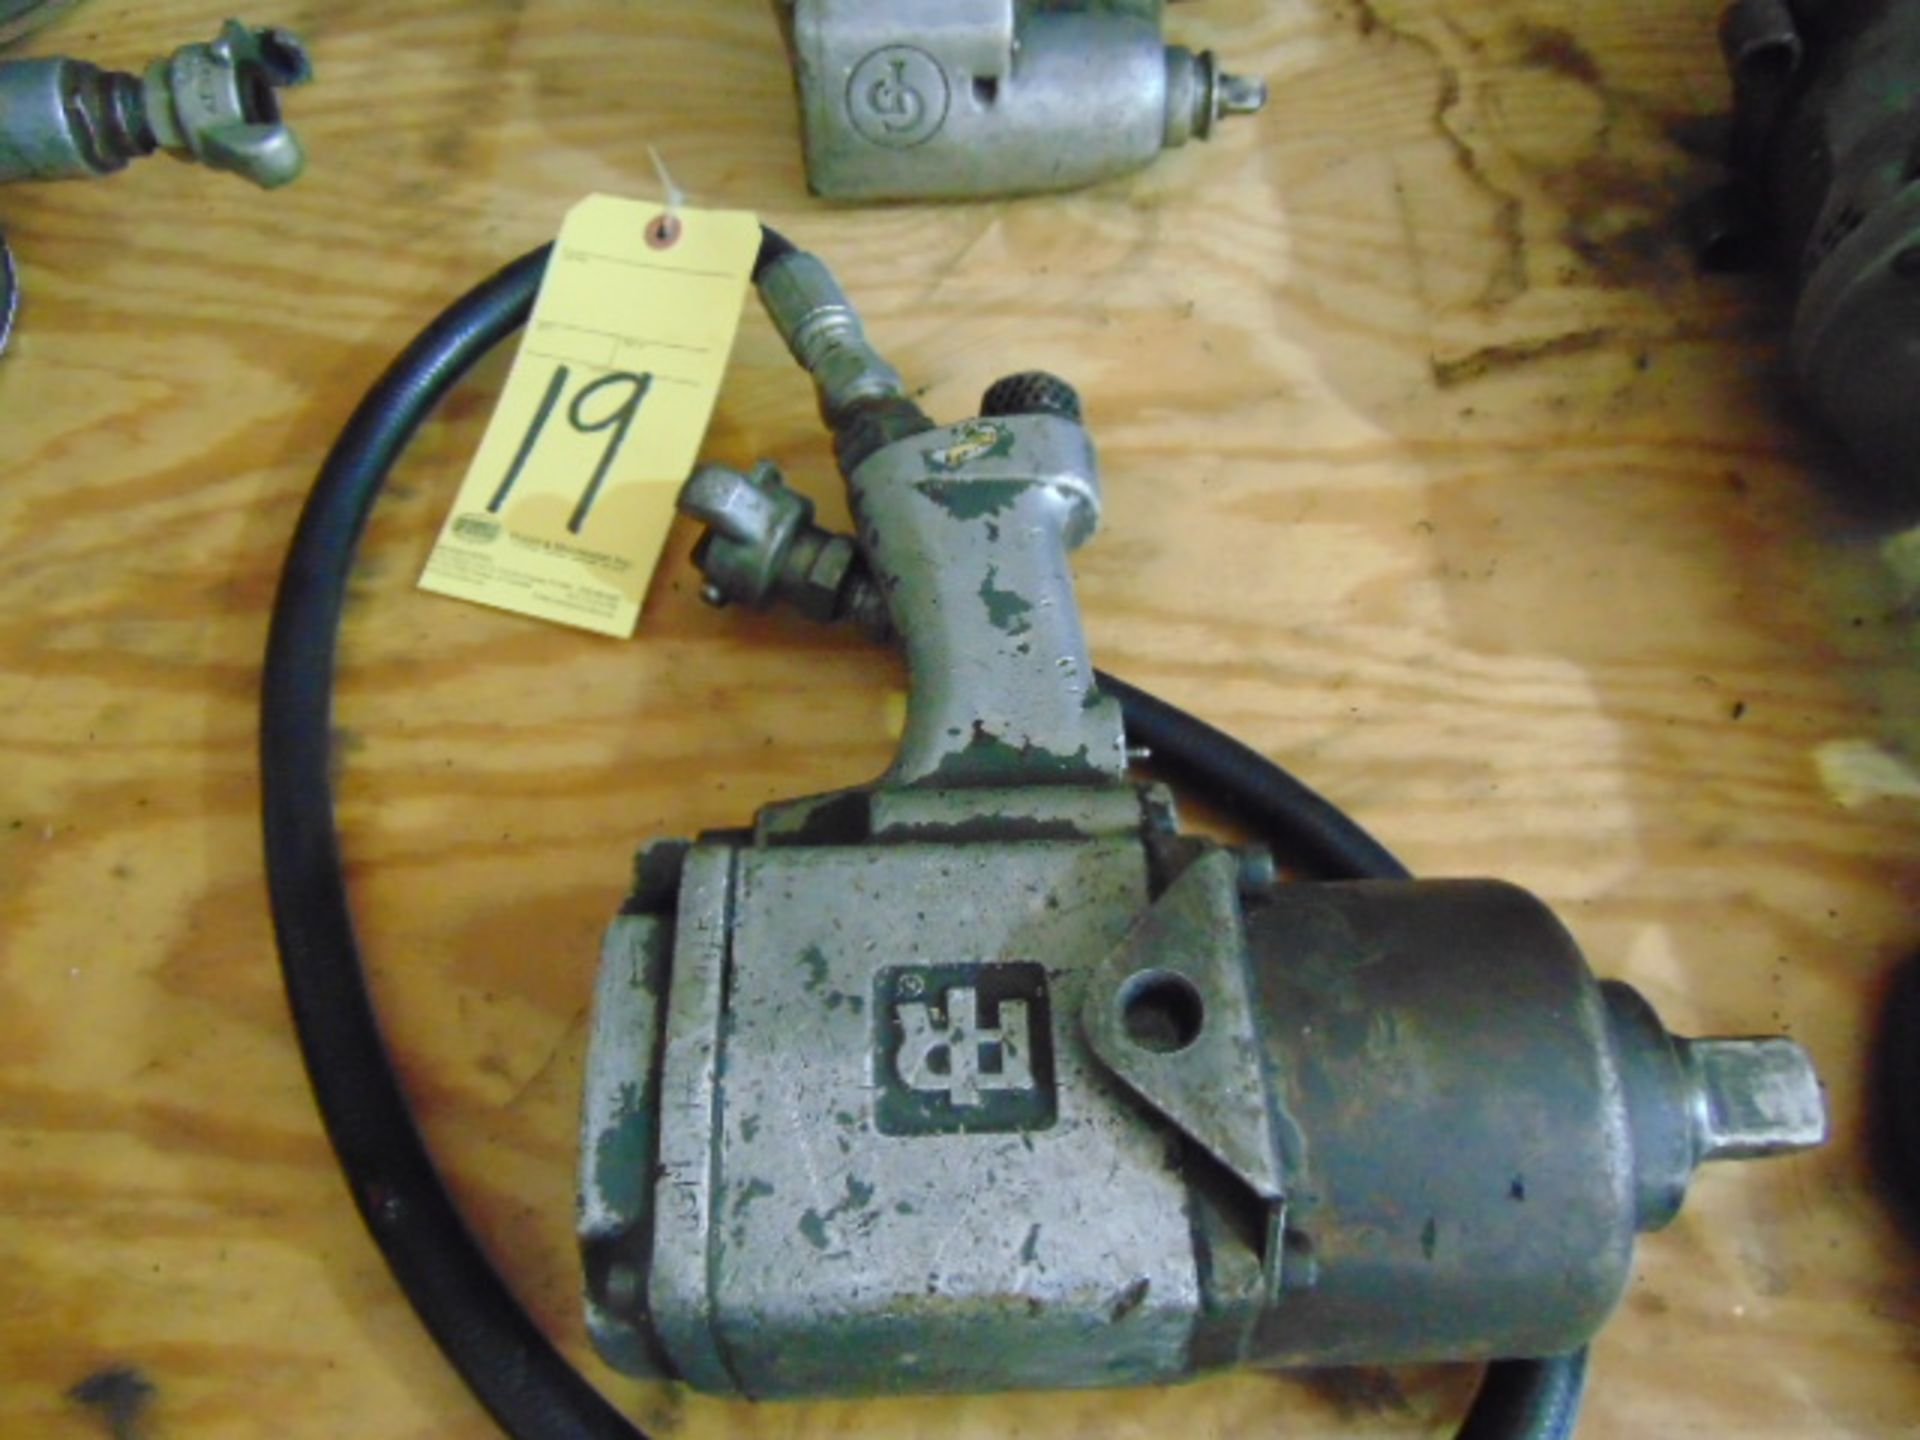 Lot 19 - PNEUMATIC IMPACT WRENCH, INGERSOLL RAND 1""